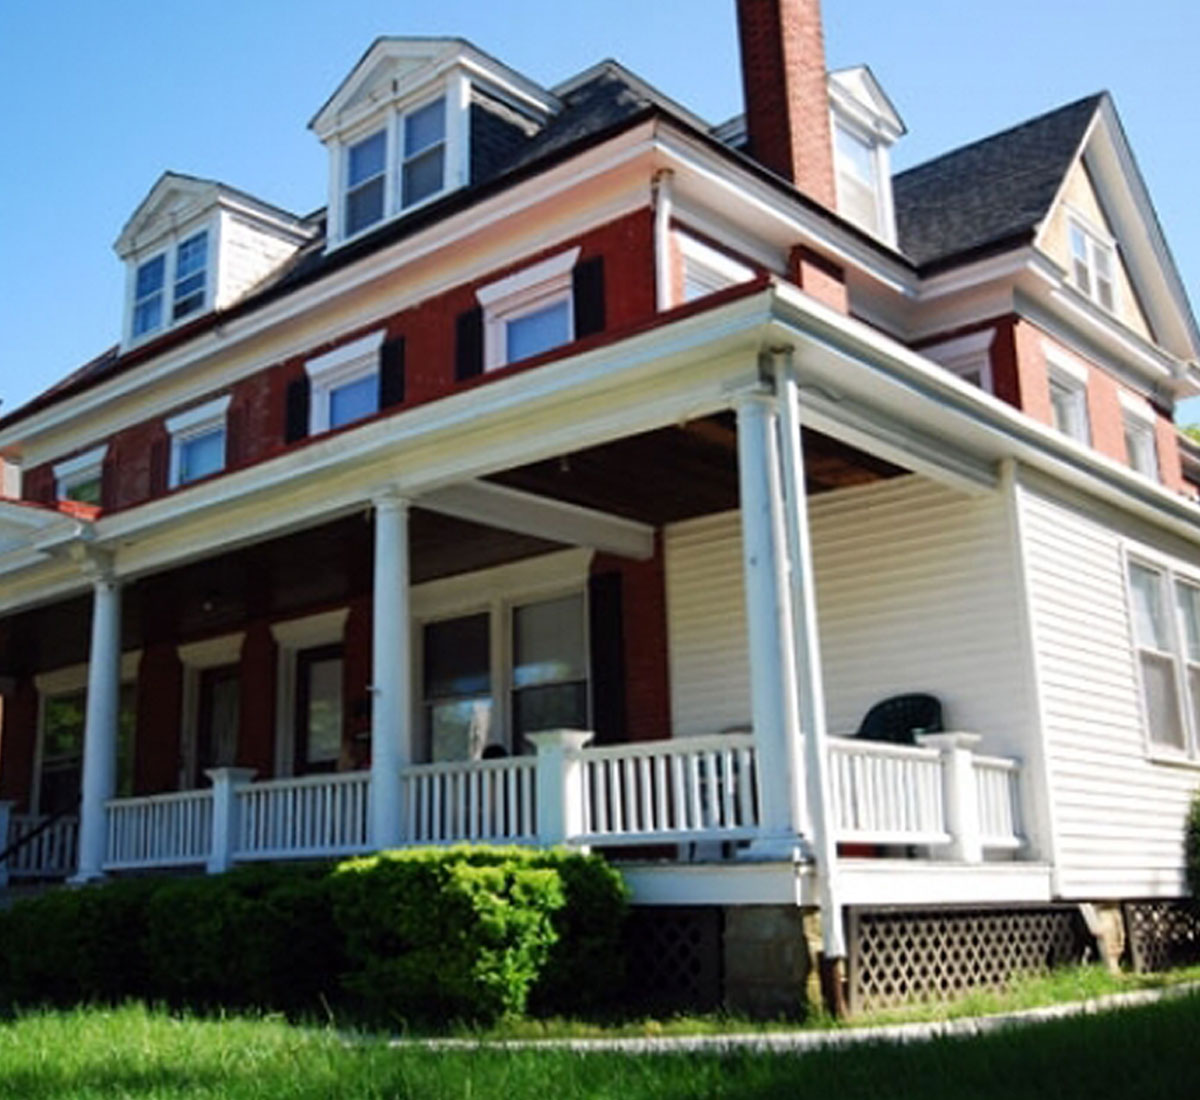 Houses Apts For Rent: West Chester Off Campus Housing